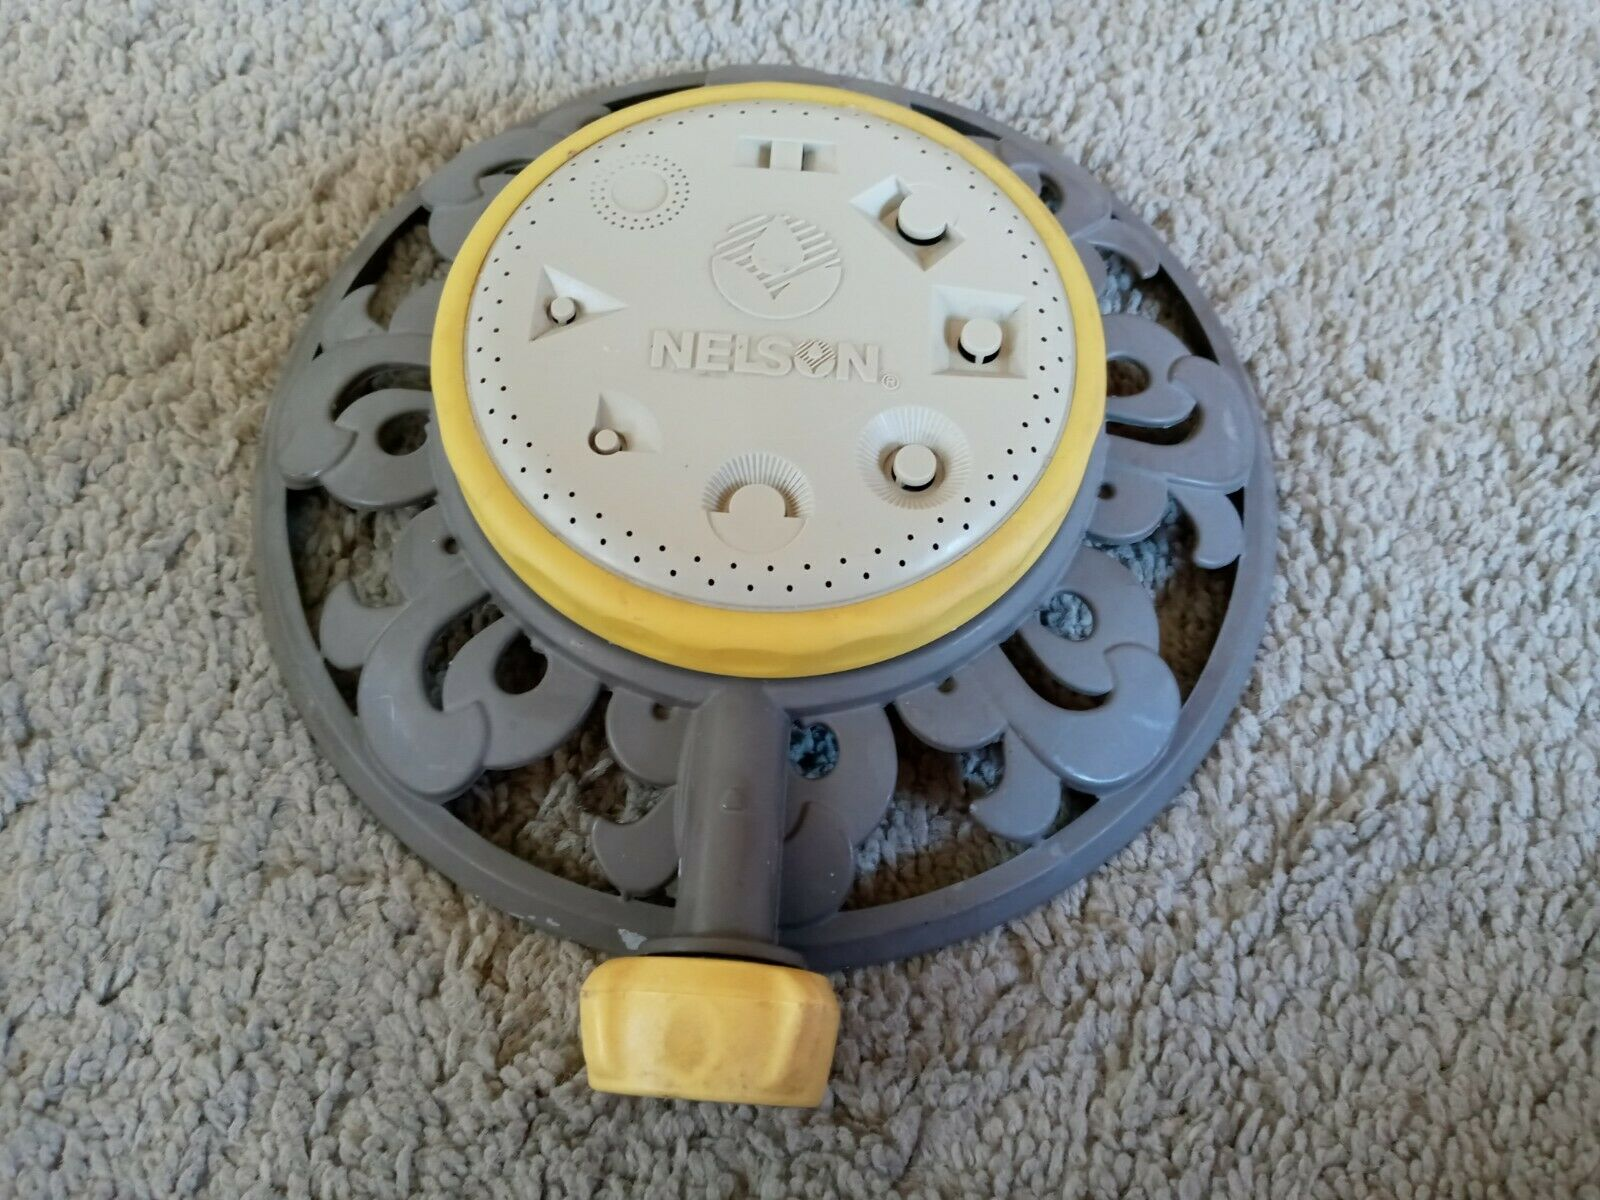 Vintage Nelson Sprinkler Preowned Good Condition